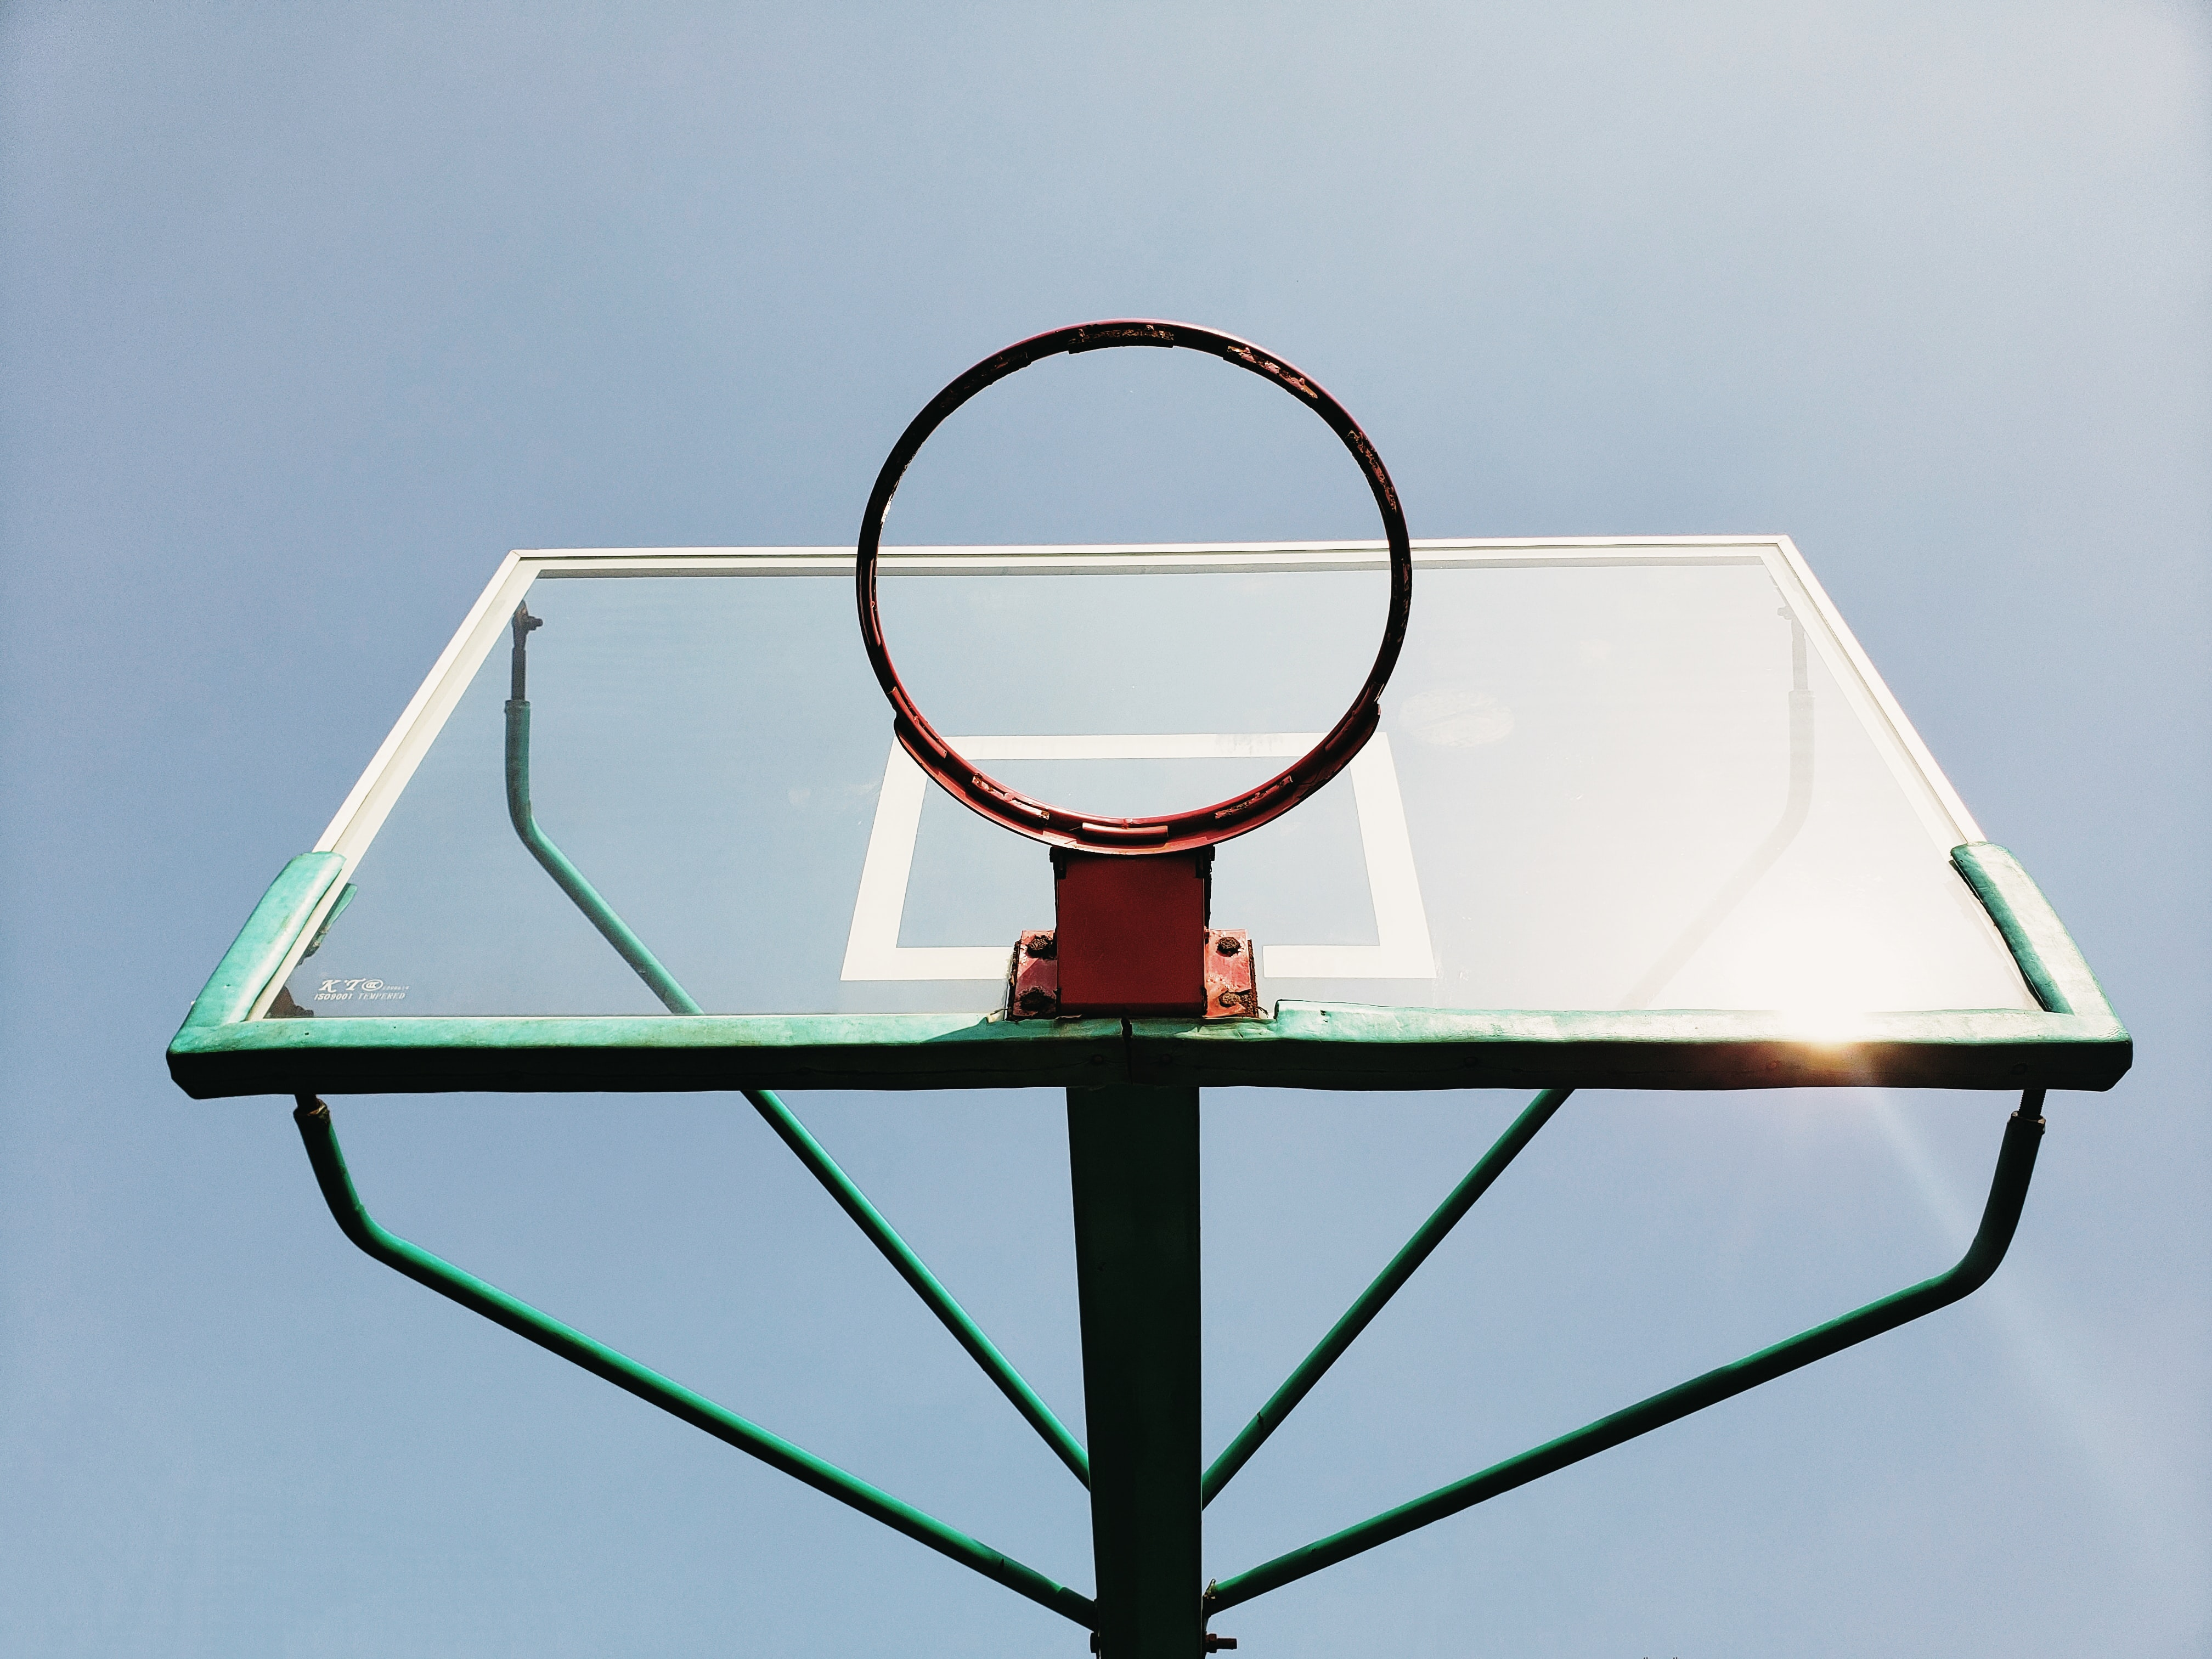 low-angle photography of green and red basketball system at daytime